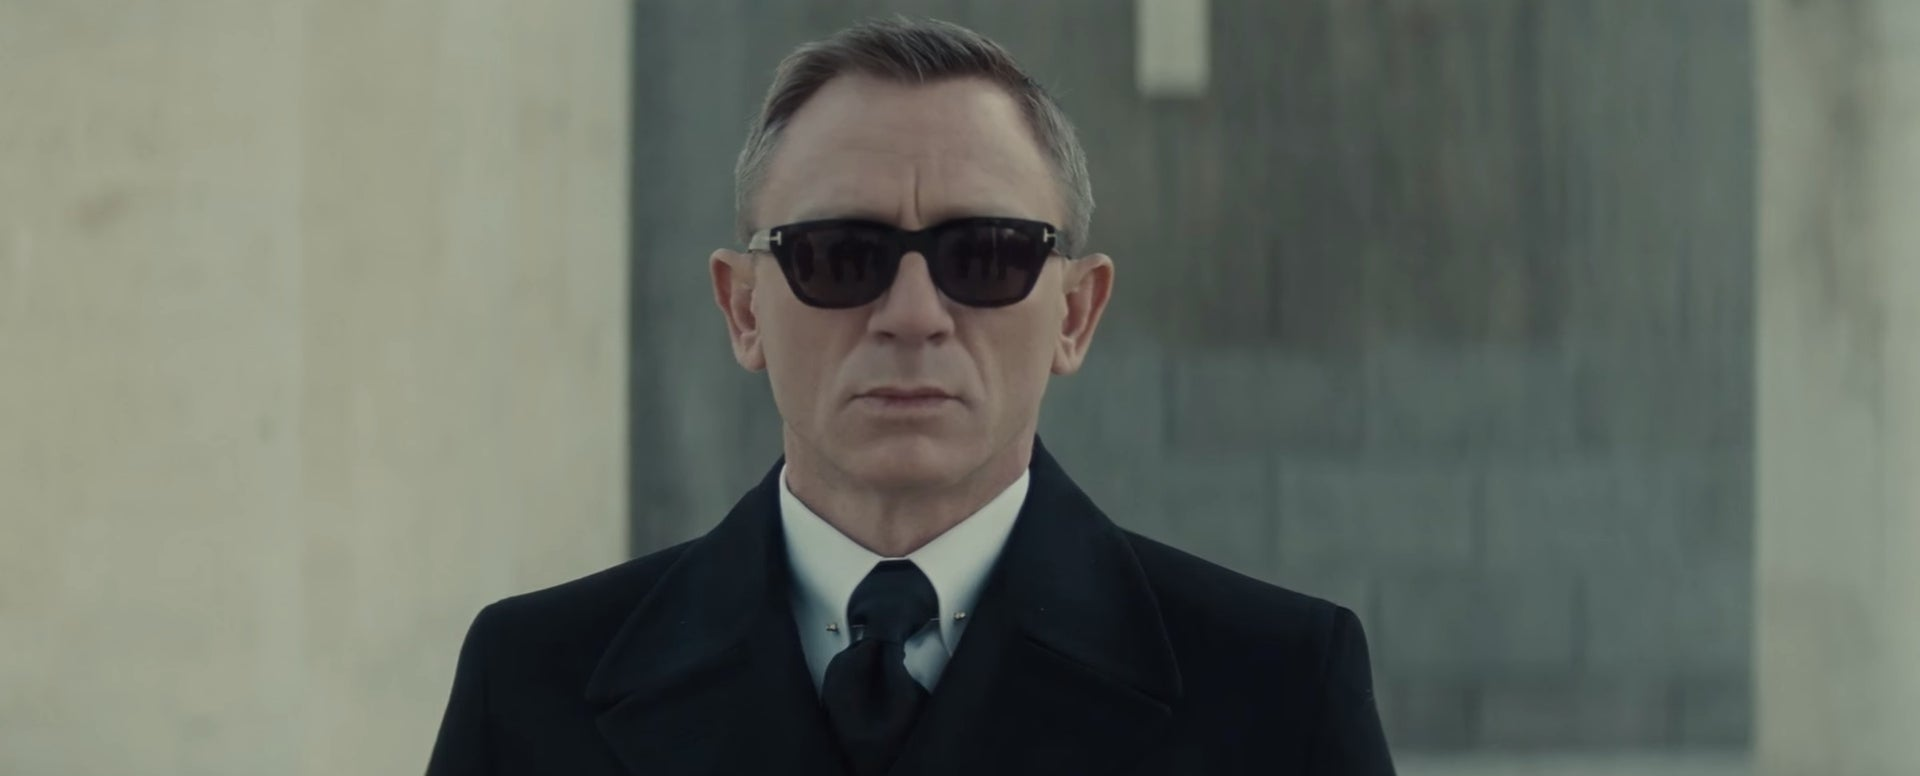 spectre producers believe daniel craig will play james bond again the independent. Black Bedroom Furniture Sets. Home Design Ideas